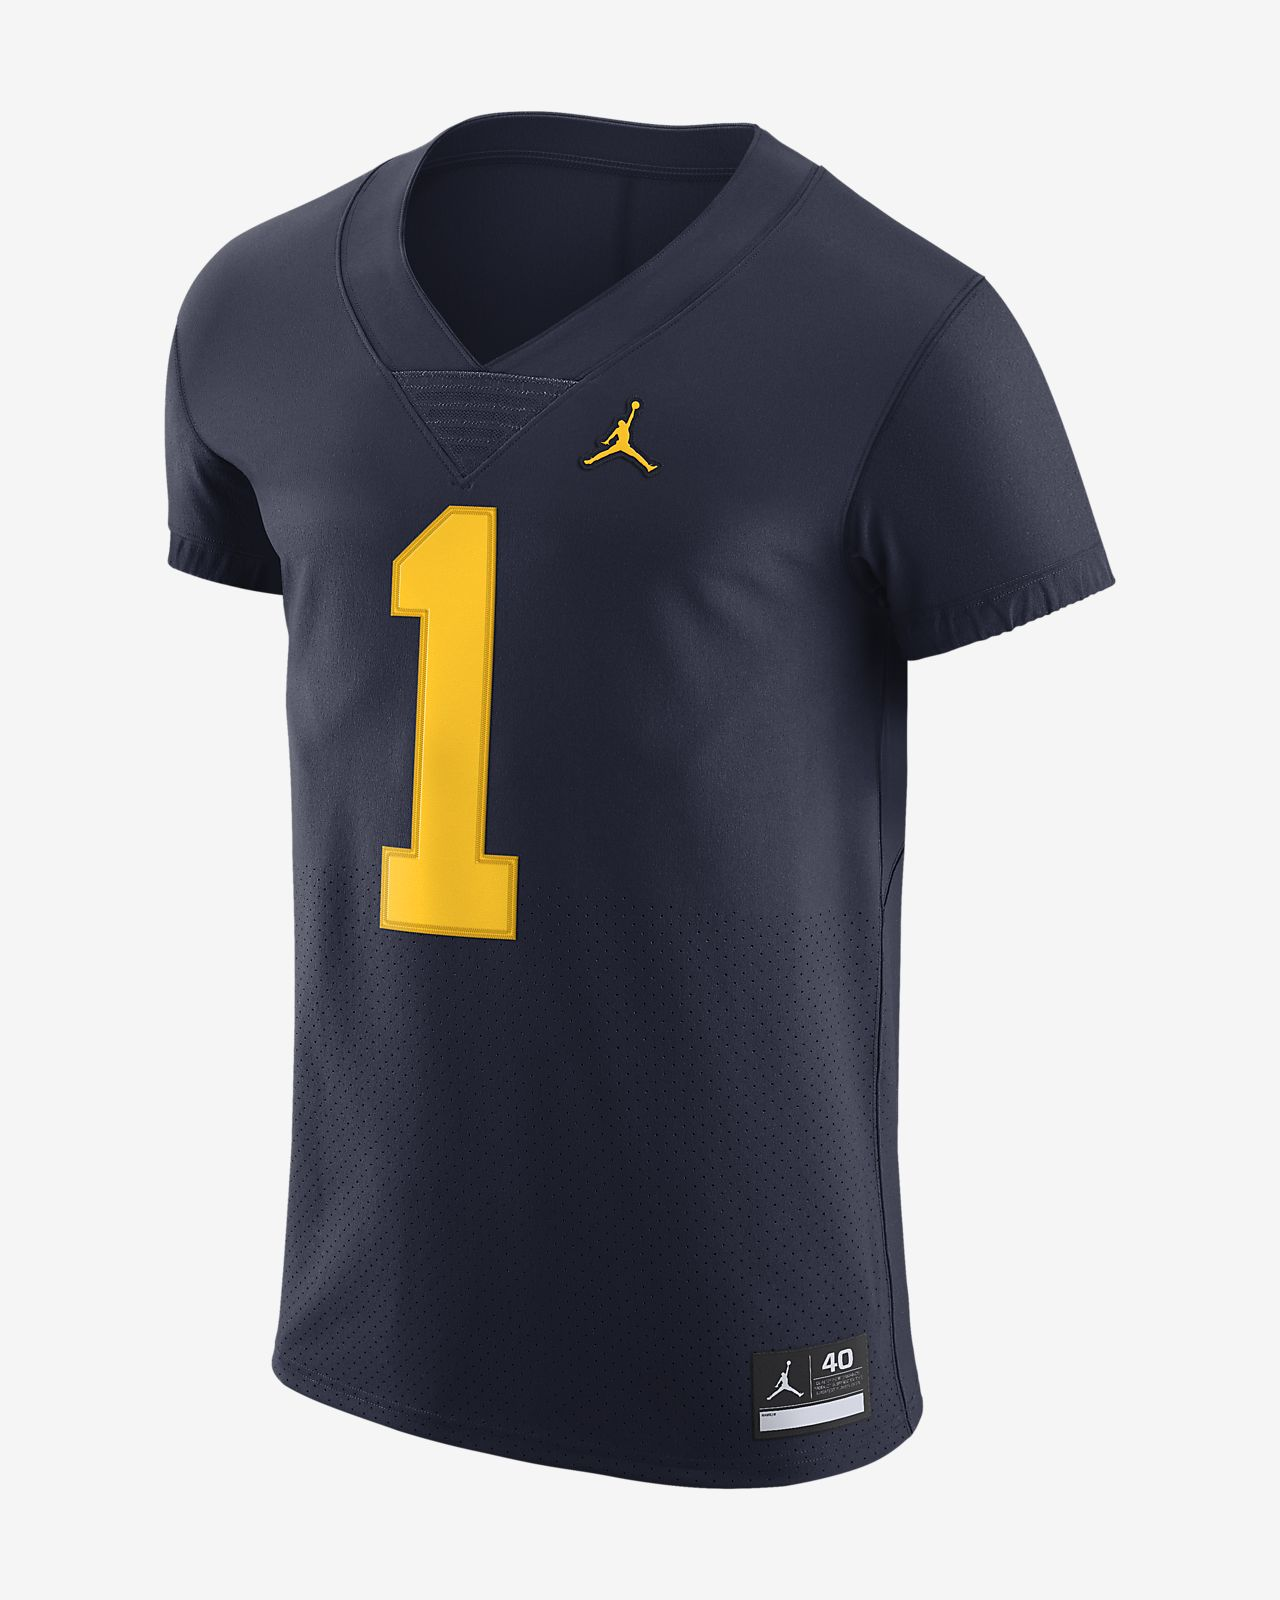 9df5e56bf640df Jordan College Elite (Michigan) Men s Football Jersey . Nike.com